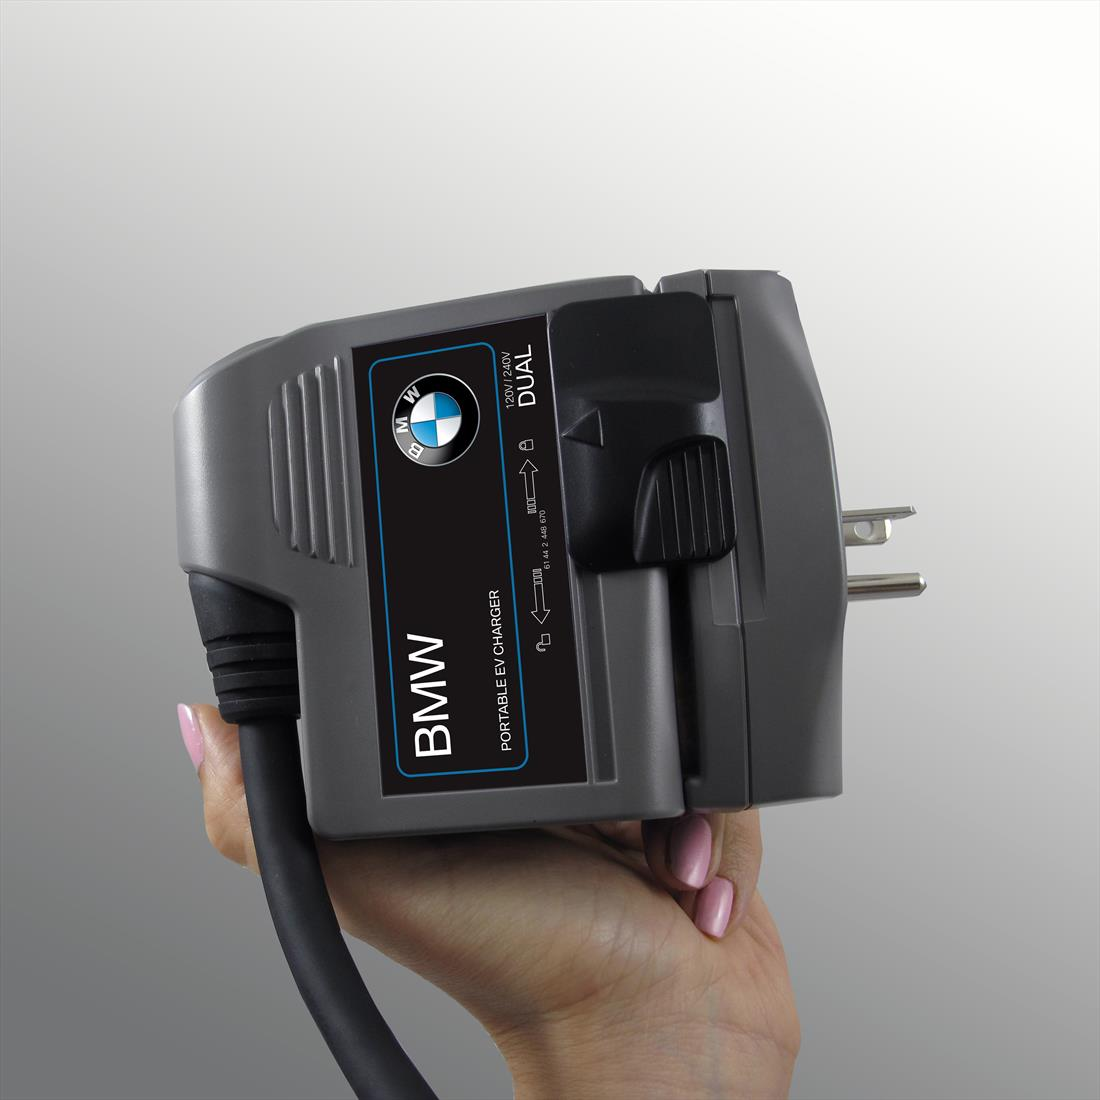 BMW TurboCord Charger